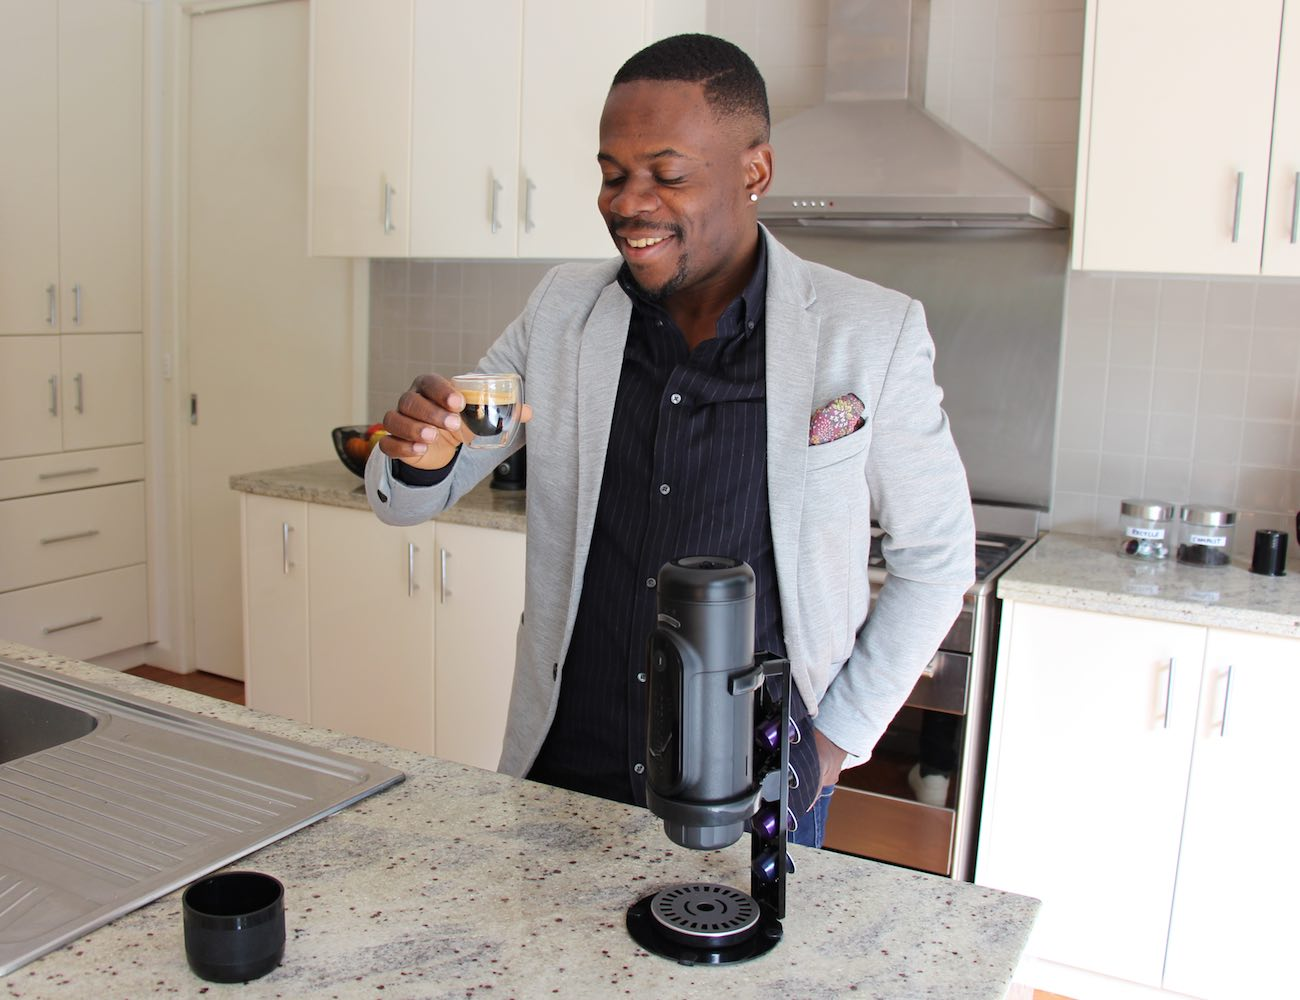 The best affordable espresso machines you can buy in 2019 - NowPresso 2